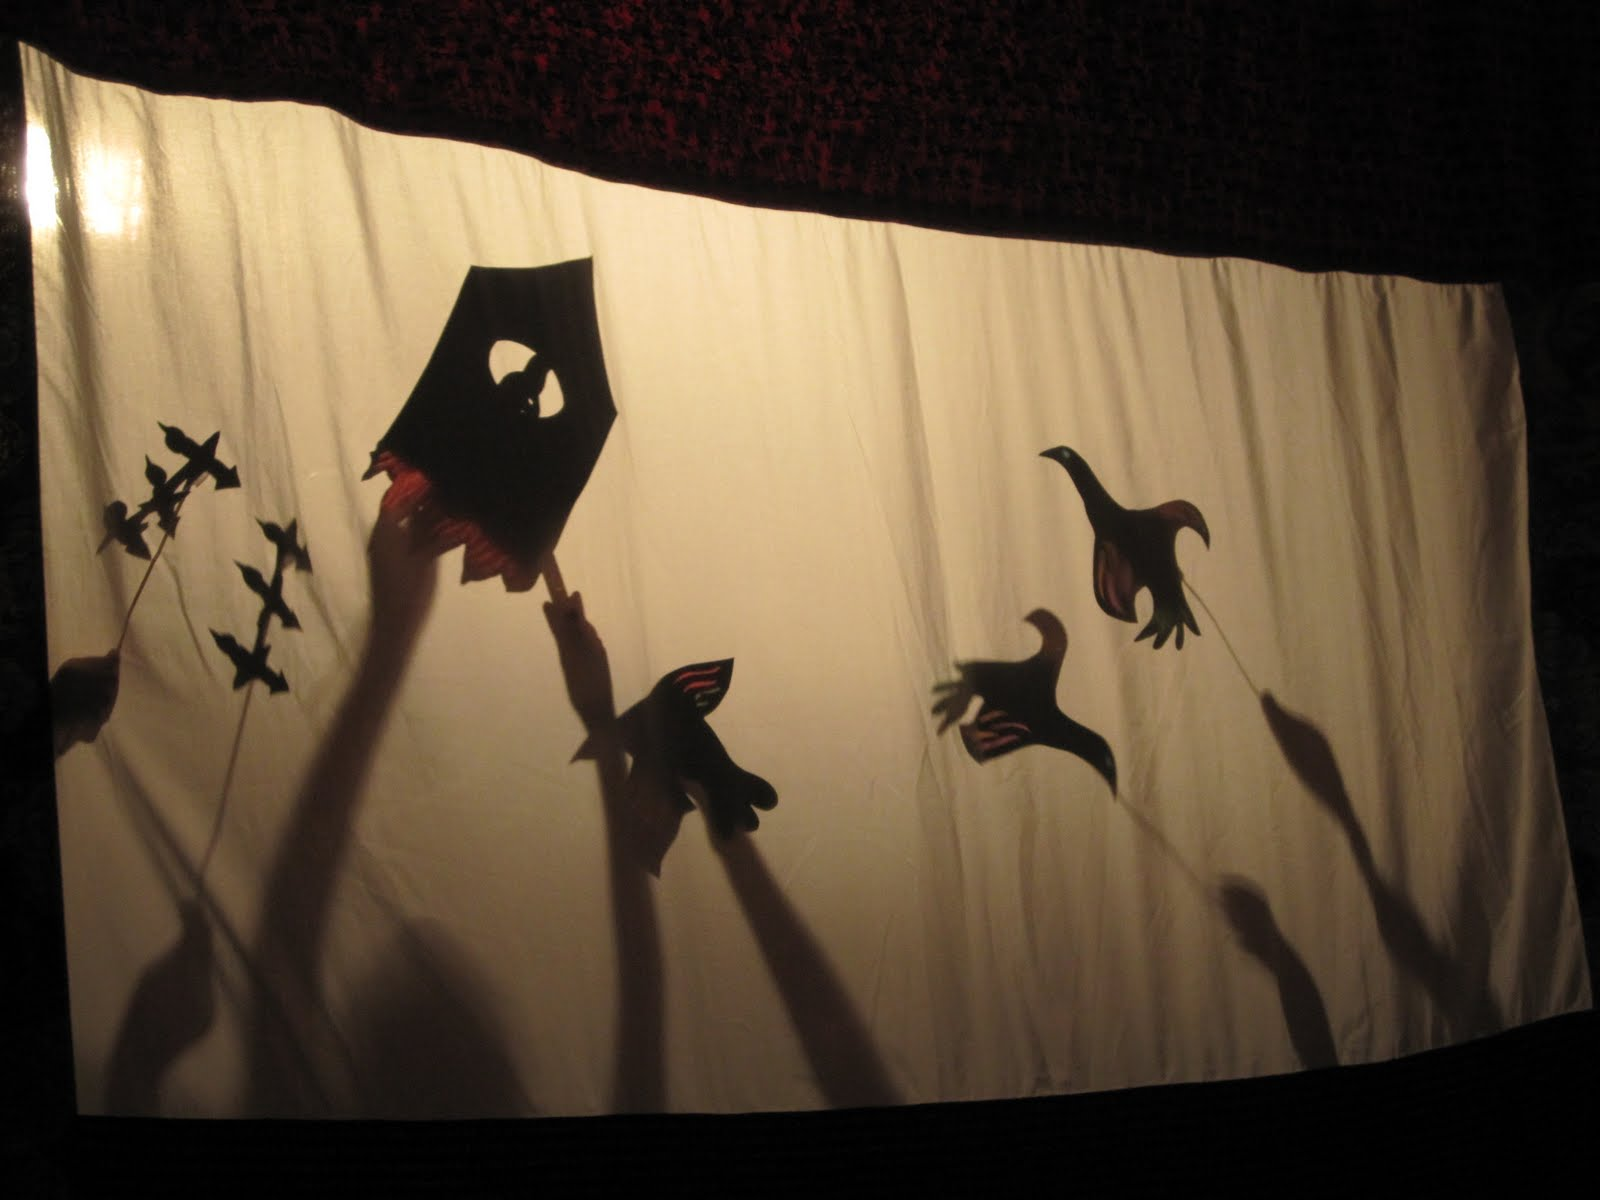 Playing Shadpw Puppets